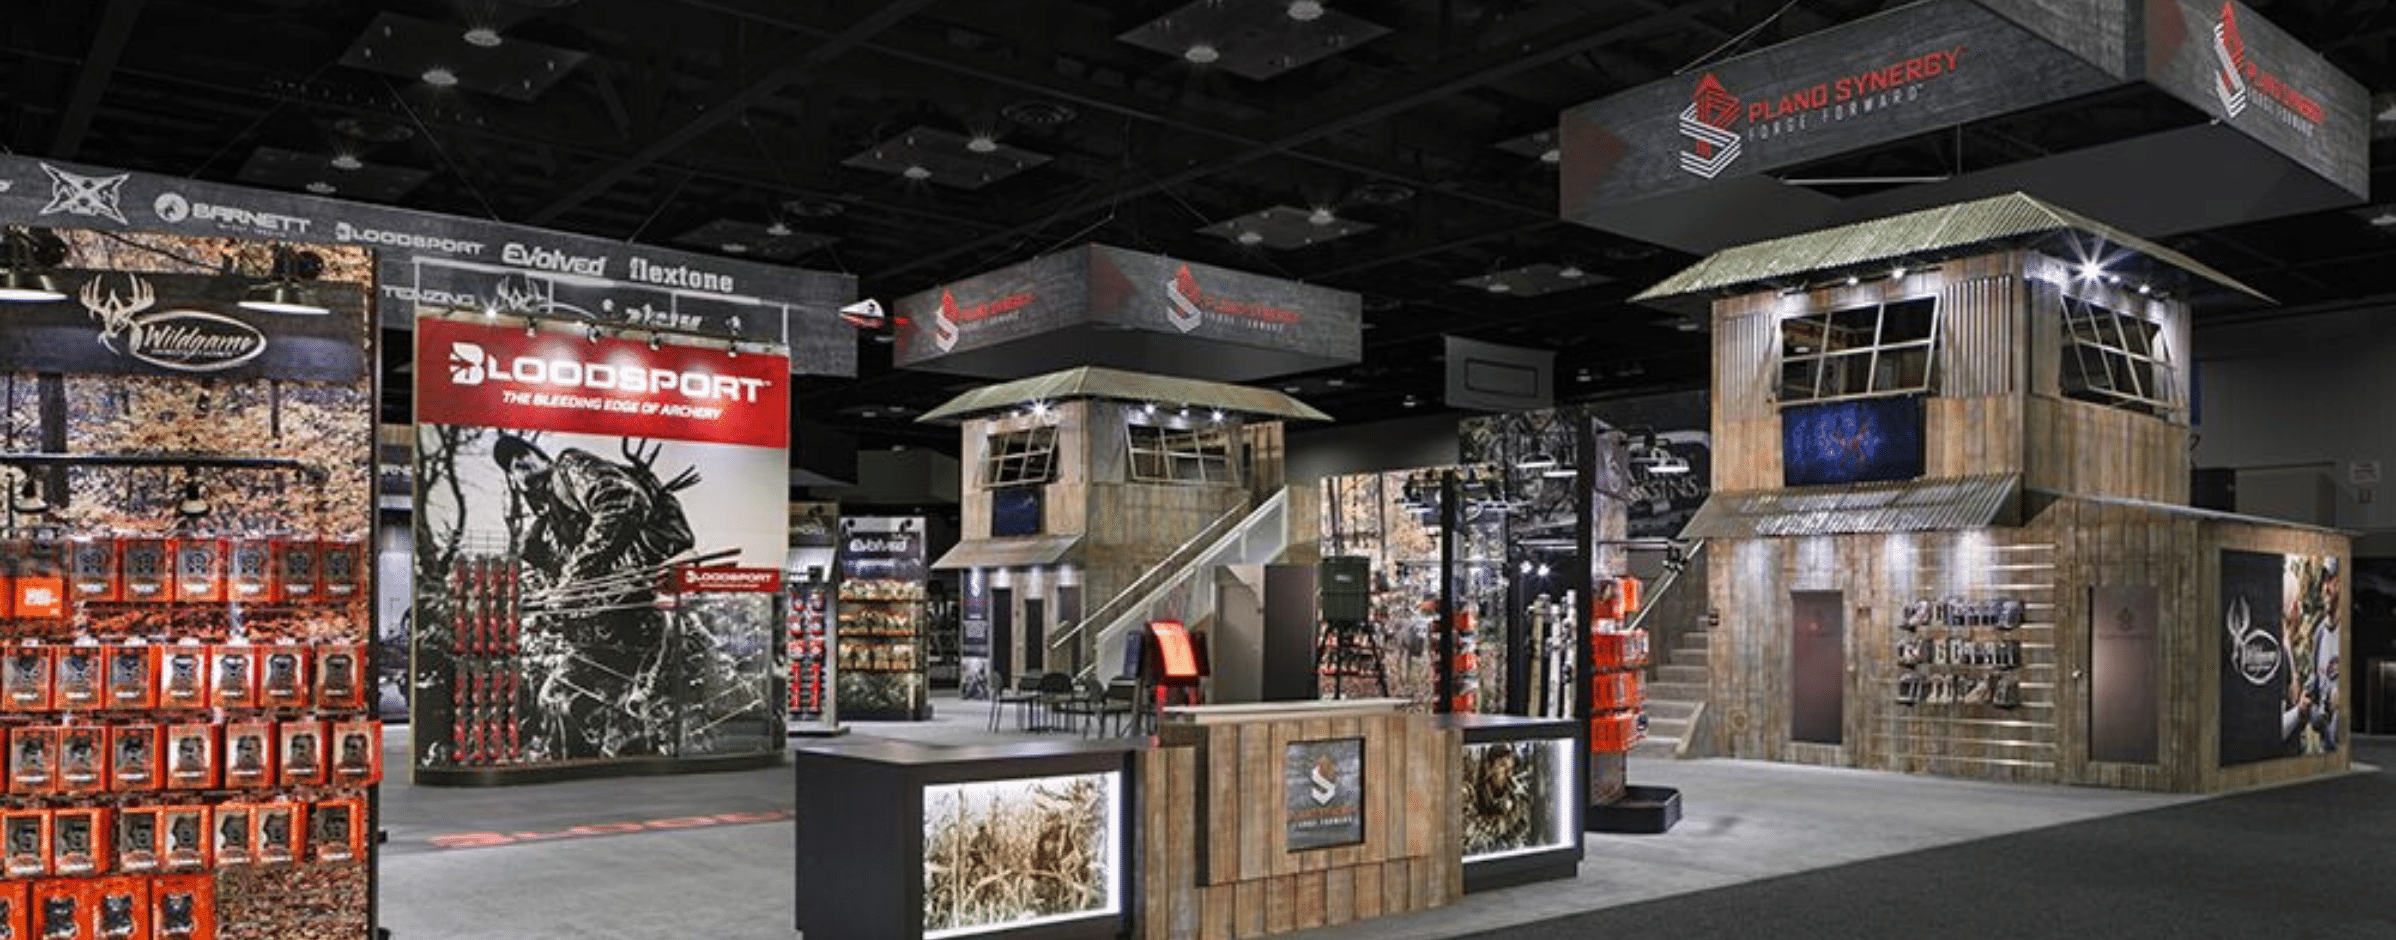 Plano Synergy - Leading manufacturer/retailer of hunting equipment, Plano works with Ephlux